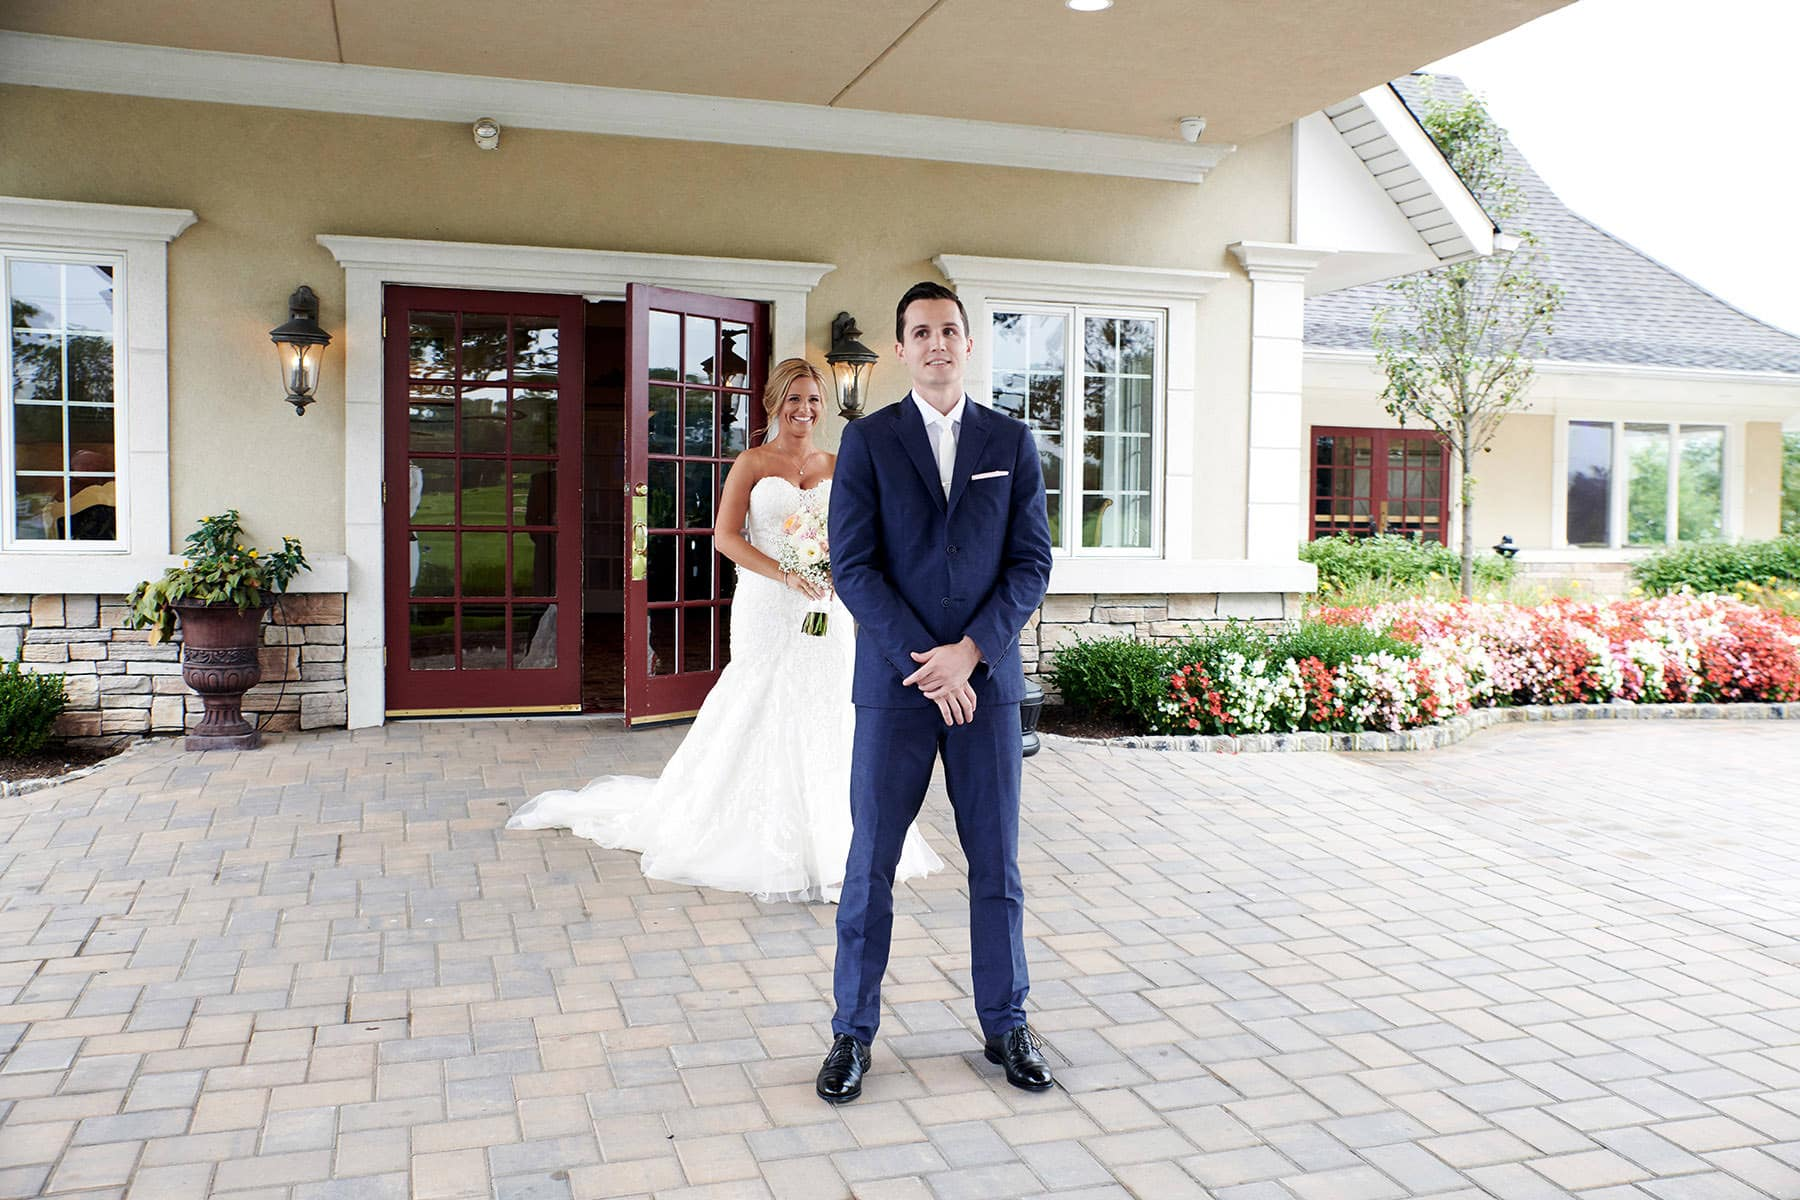 first look wedding photo at flanders valley nj